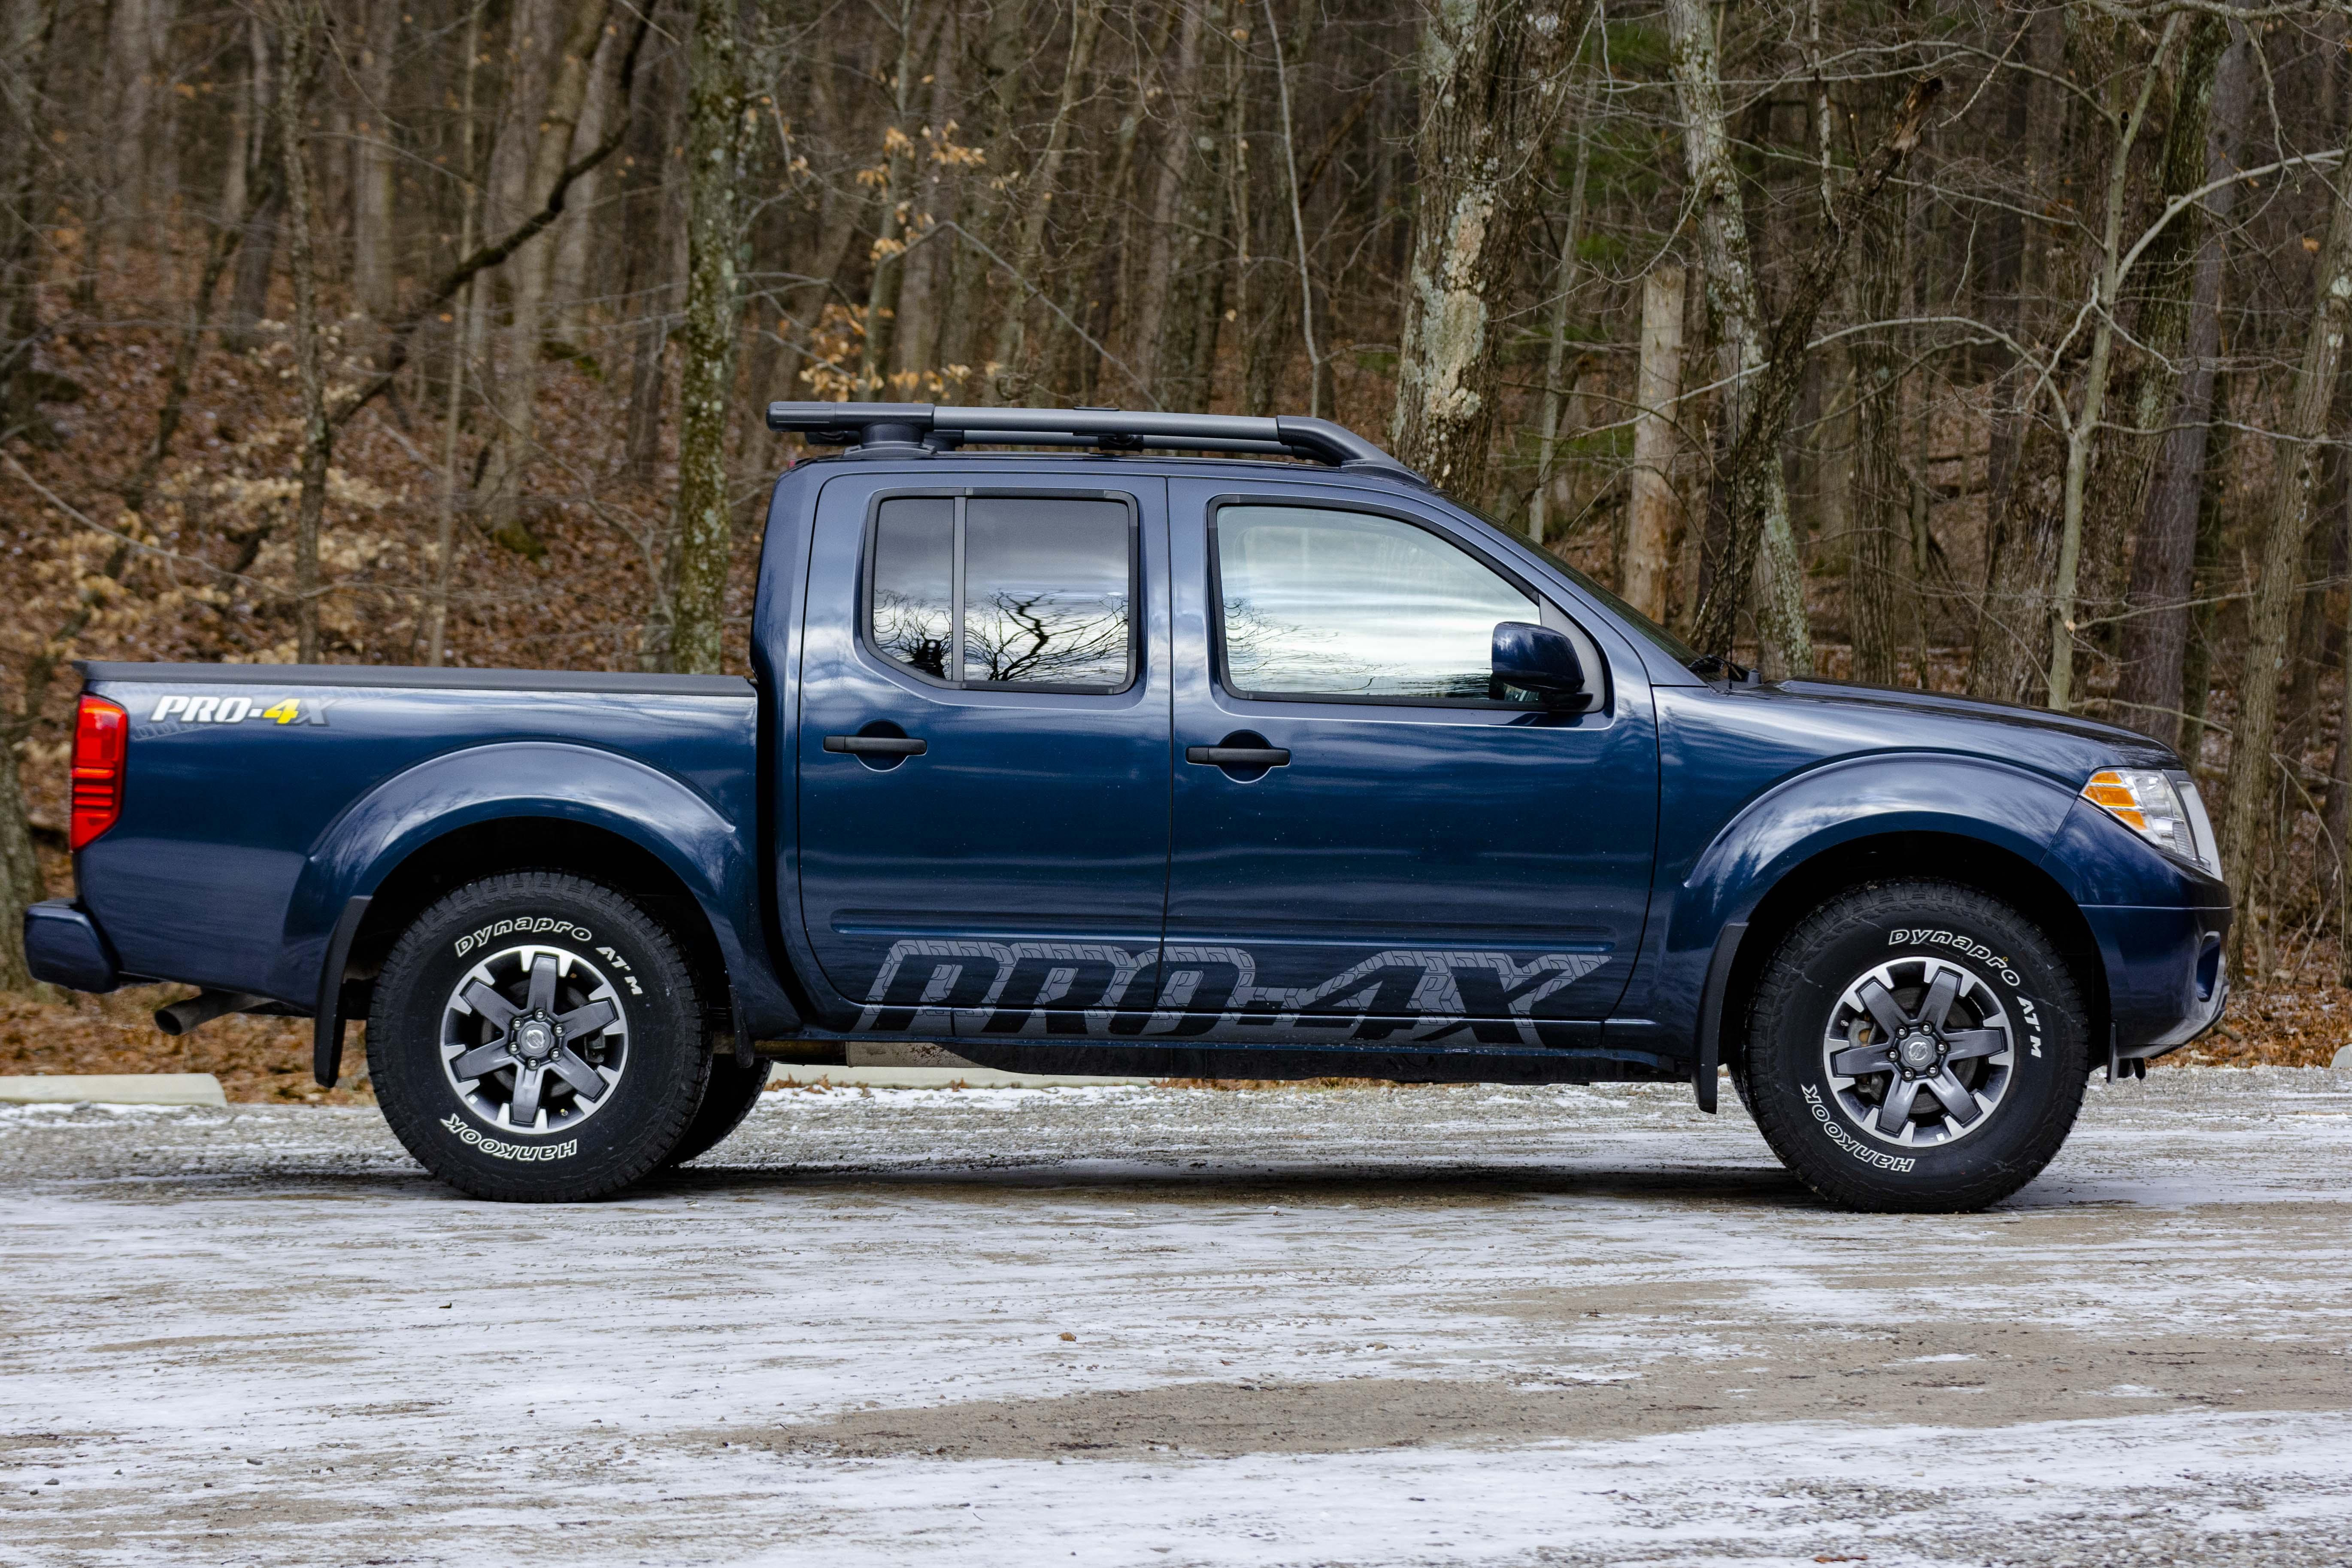 19 Concept of New 2019 Nissan Frontier Pro 4X Release Date Price And Review Redesign with New 2019 Nissan Frontier Pro 4X Release Date Price And Review